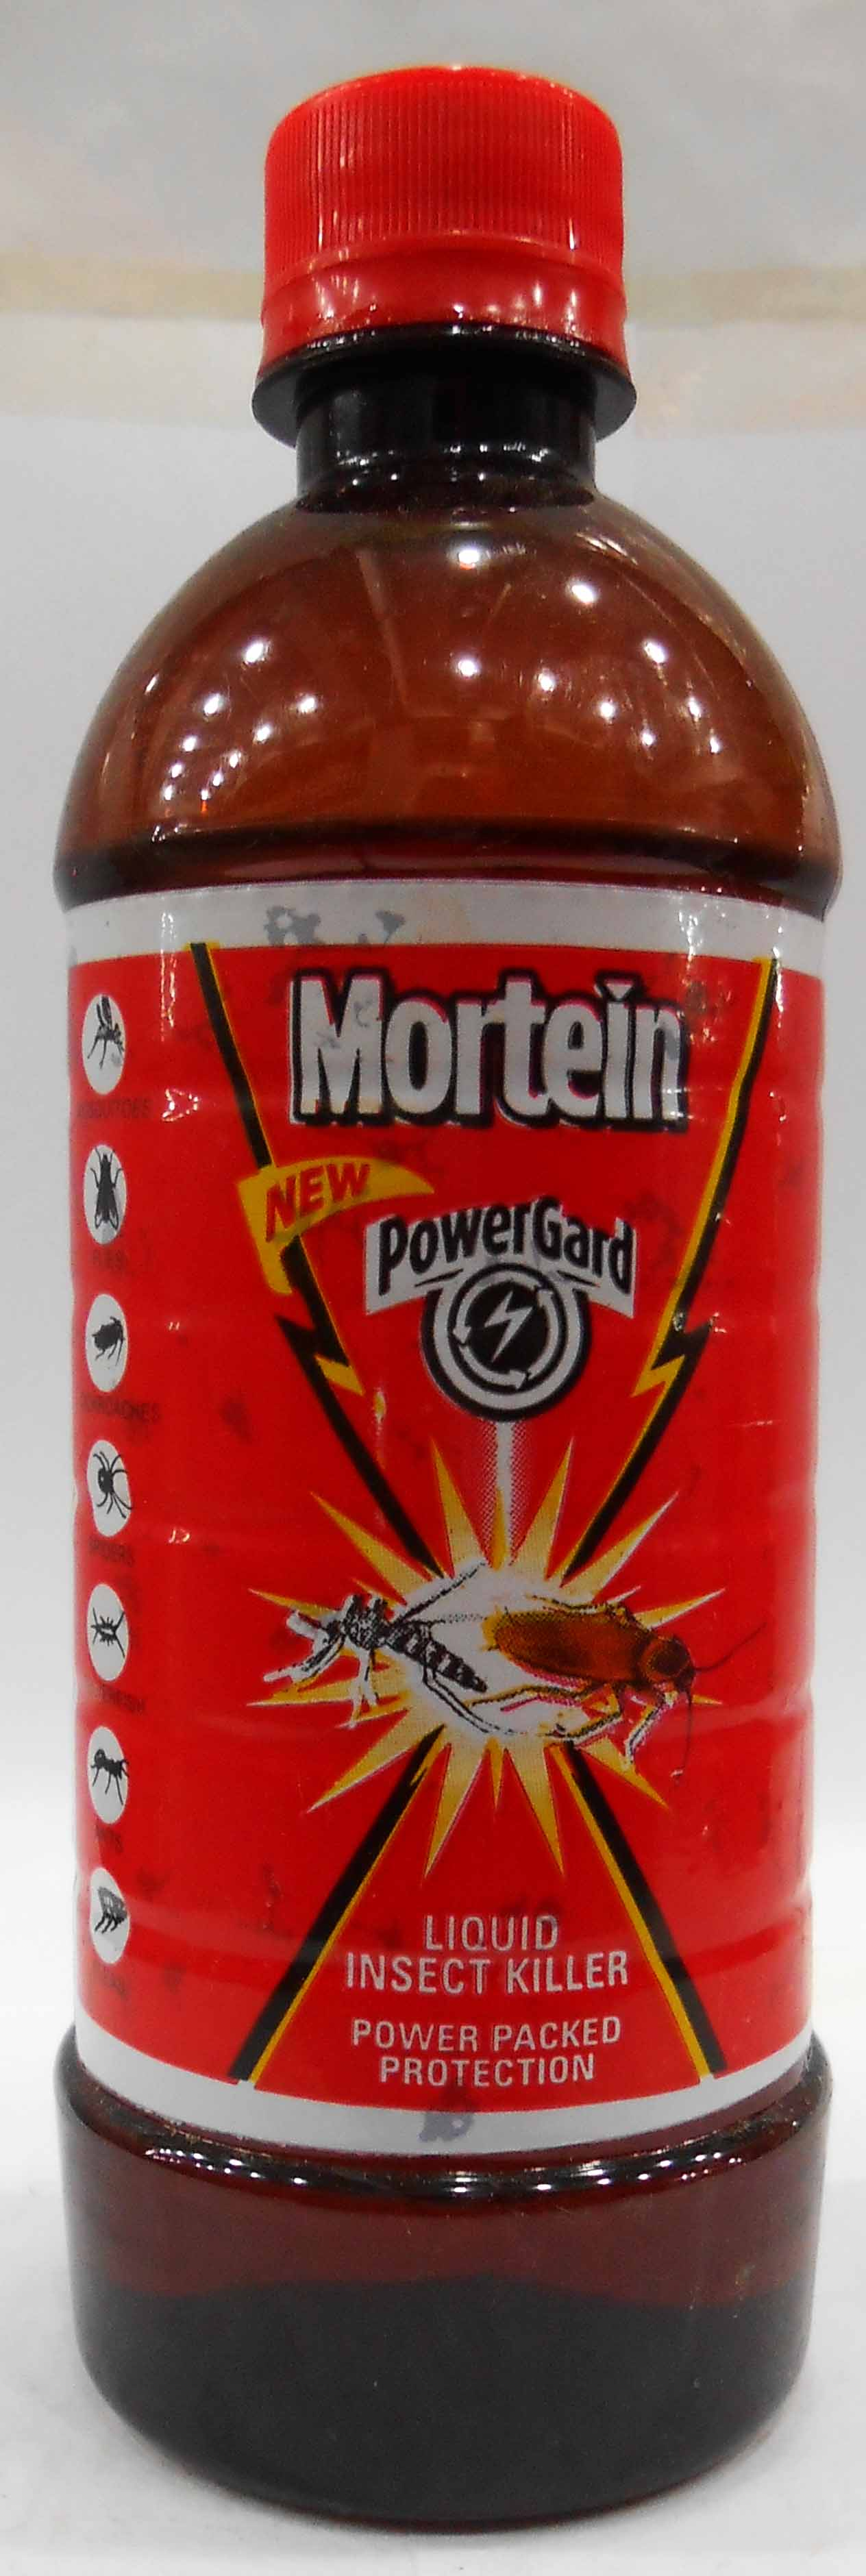 Mortein Natur Gard Mosquito Killer 400ml Insect